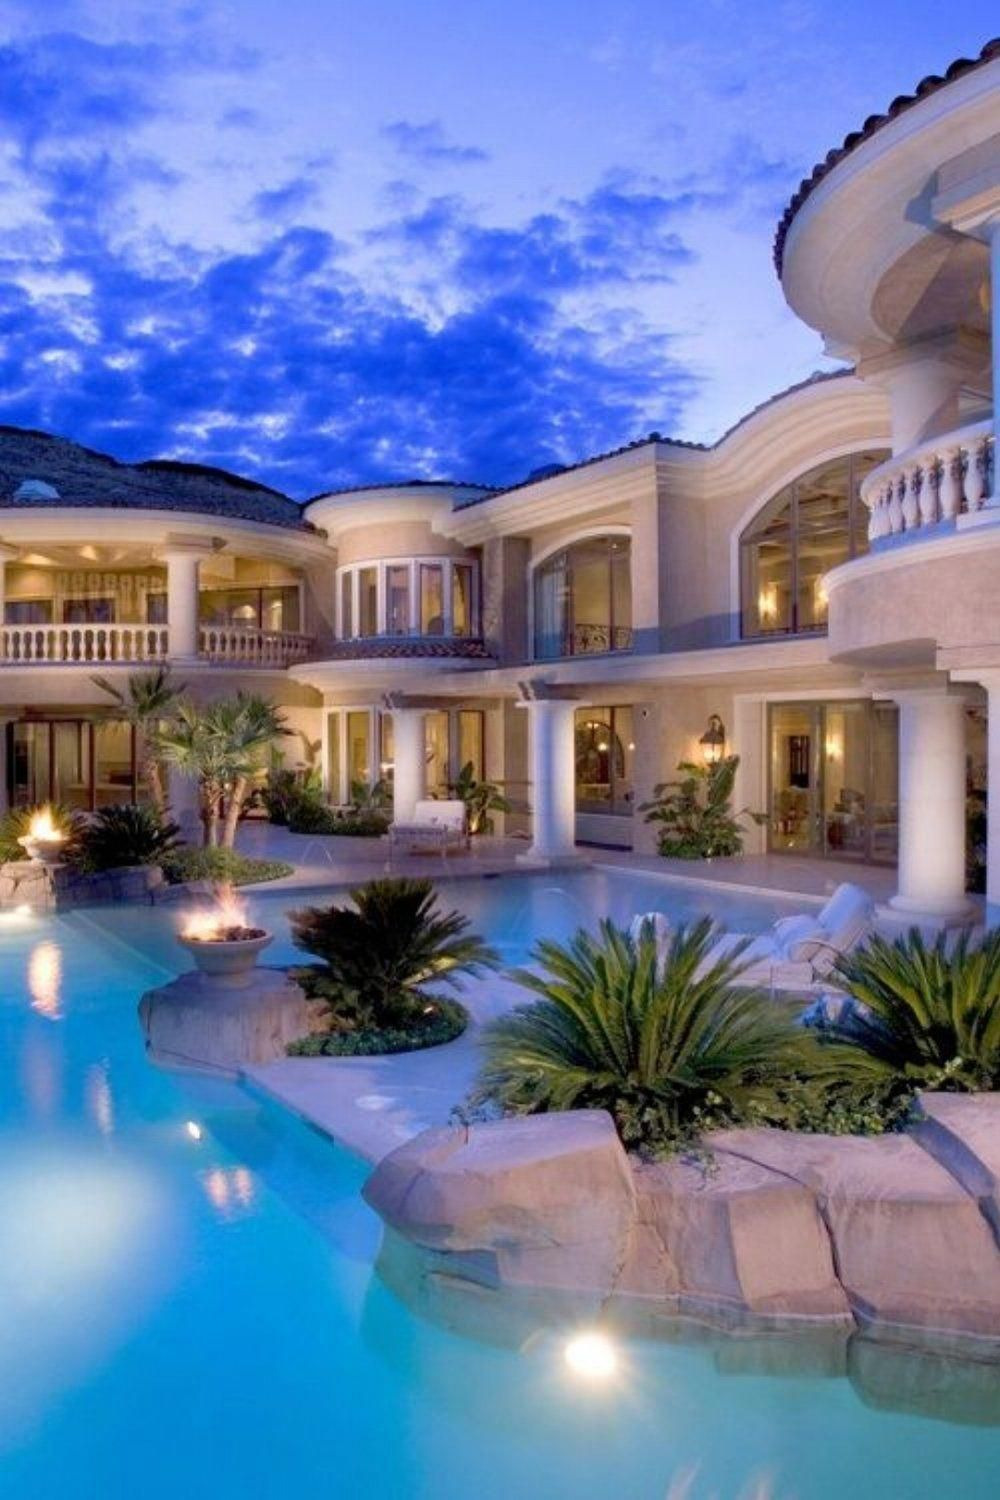 Very Beautiful House In the World Inspirational Most Expensive Fancy Houses In the World